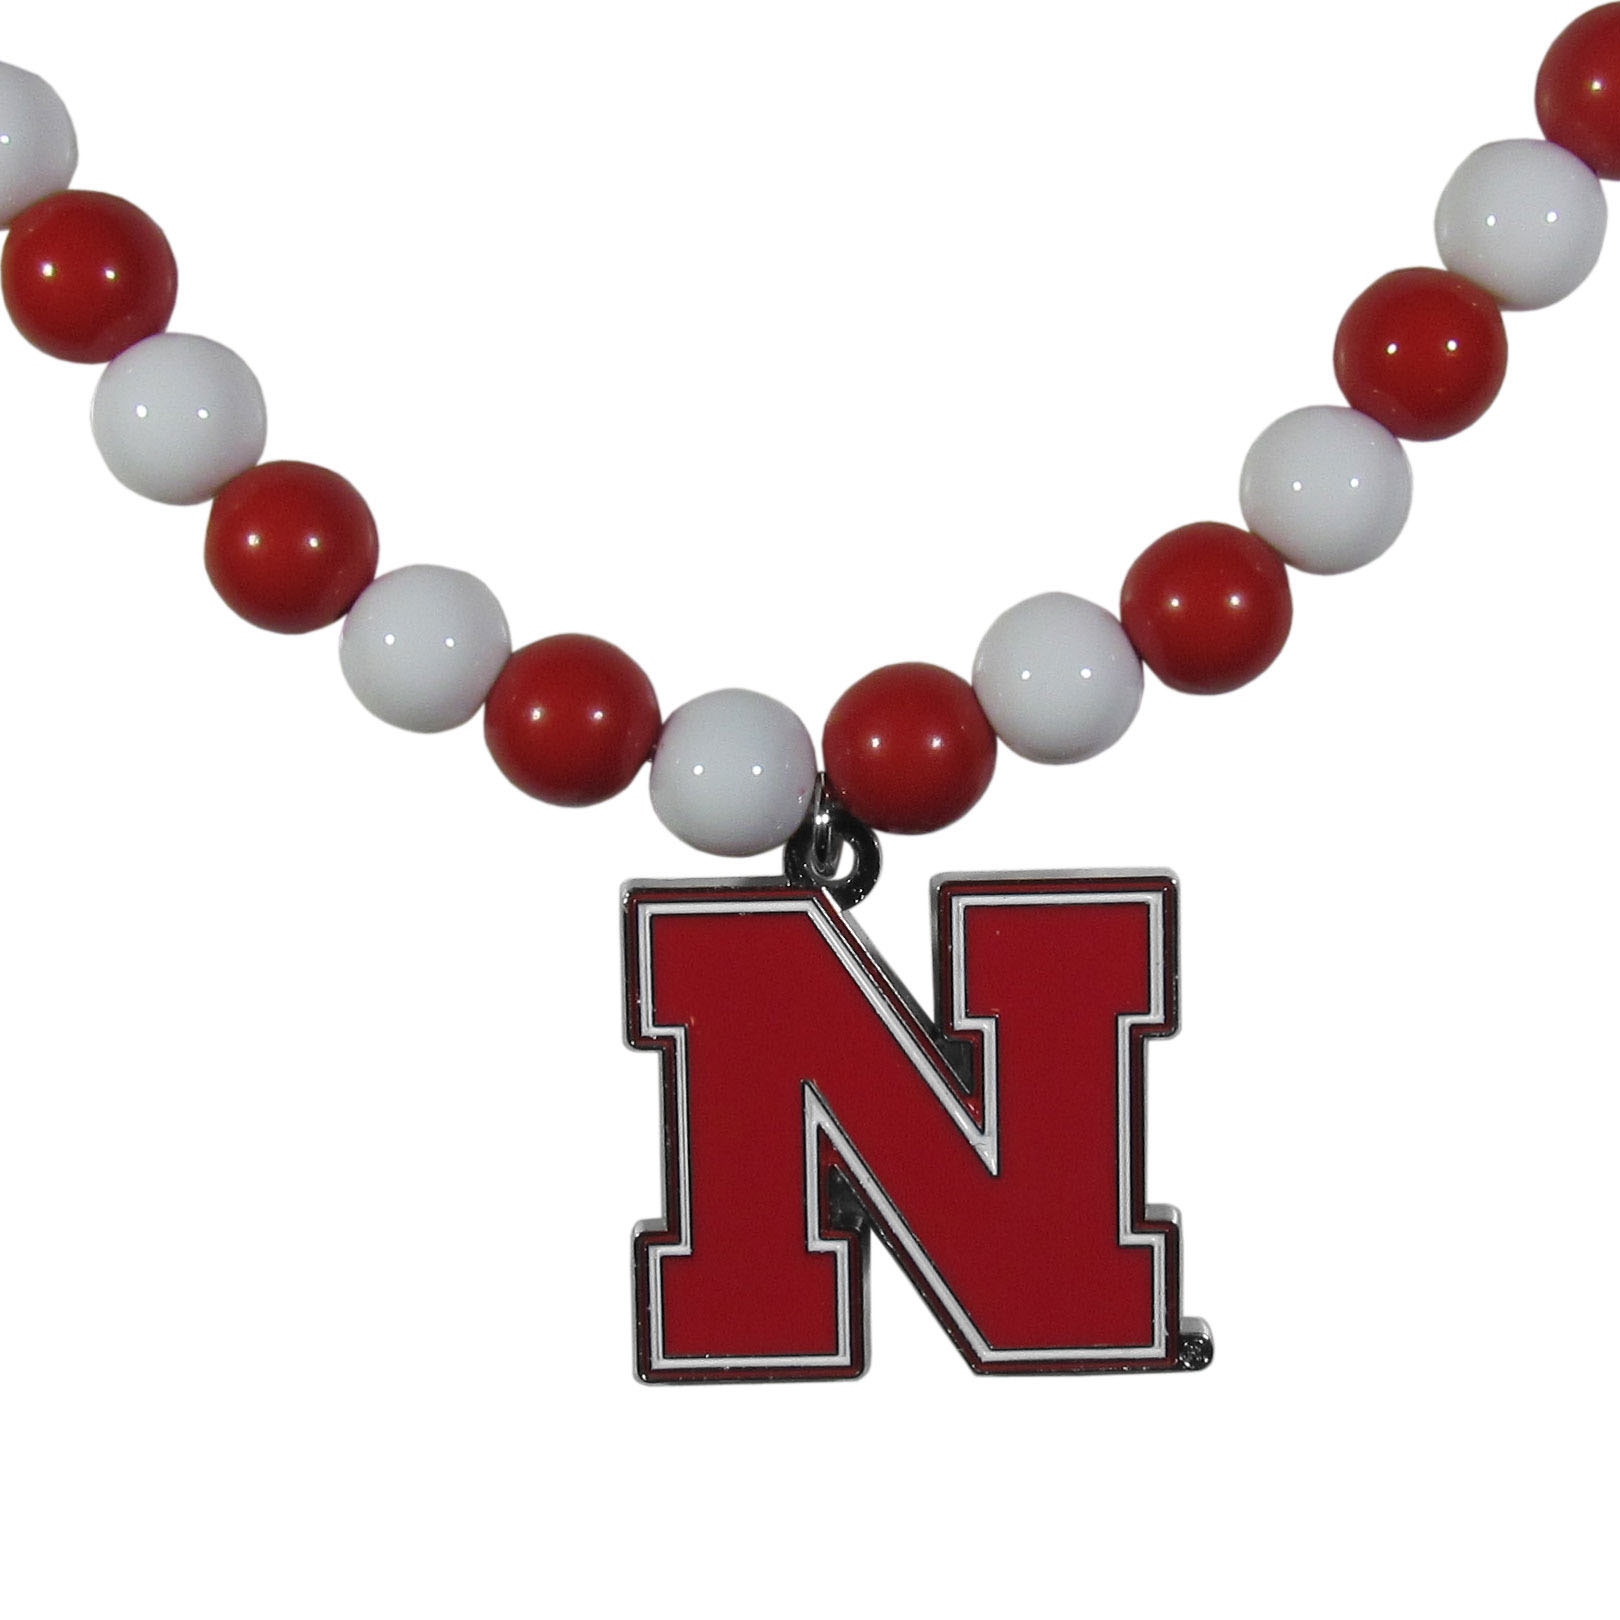 Nebraska Cornhuskers Fan Bead Necklace - Make a big statement with our fan bead necklaces! These brightly colored necklace have a 24 inch string of alternating colored beads with an extra large, high-polish Nebraska Cornhuskers pendant.